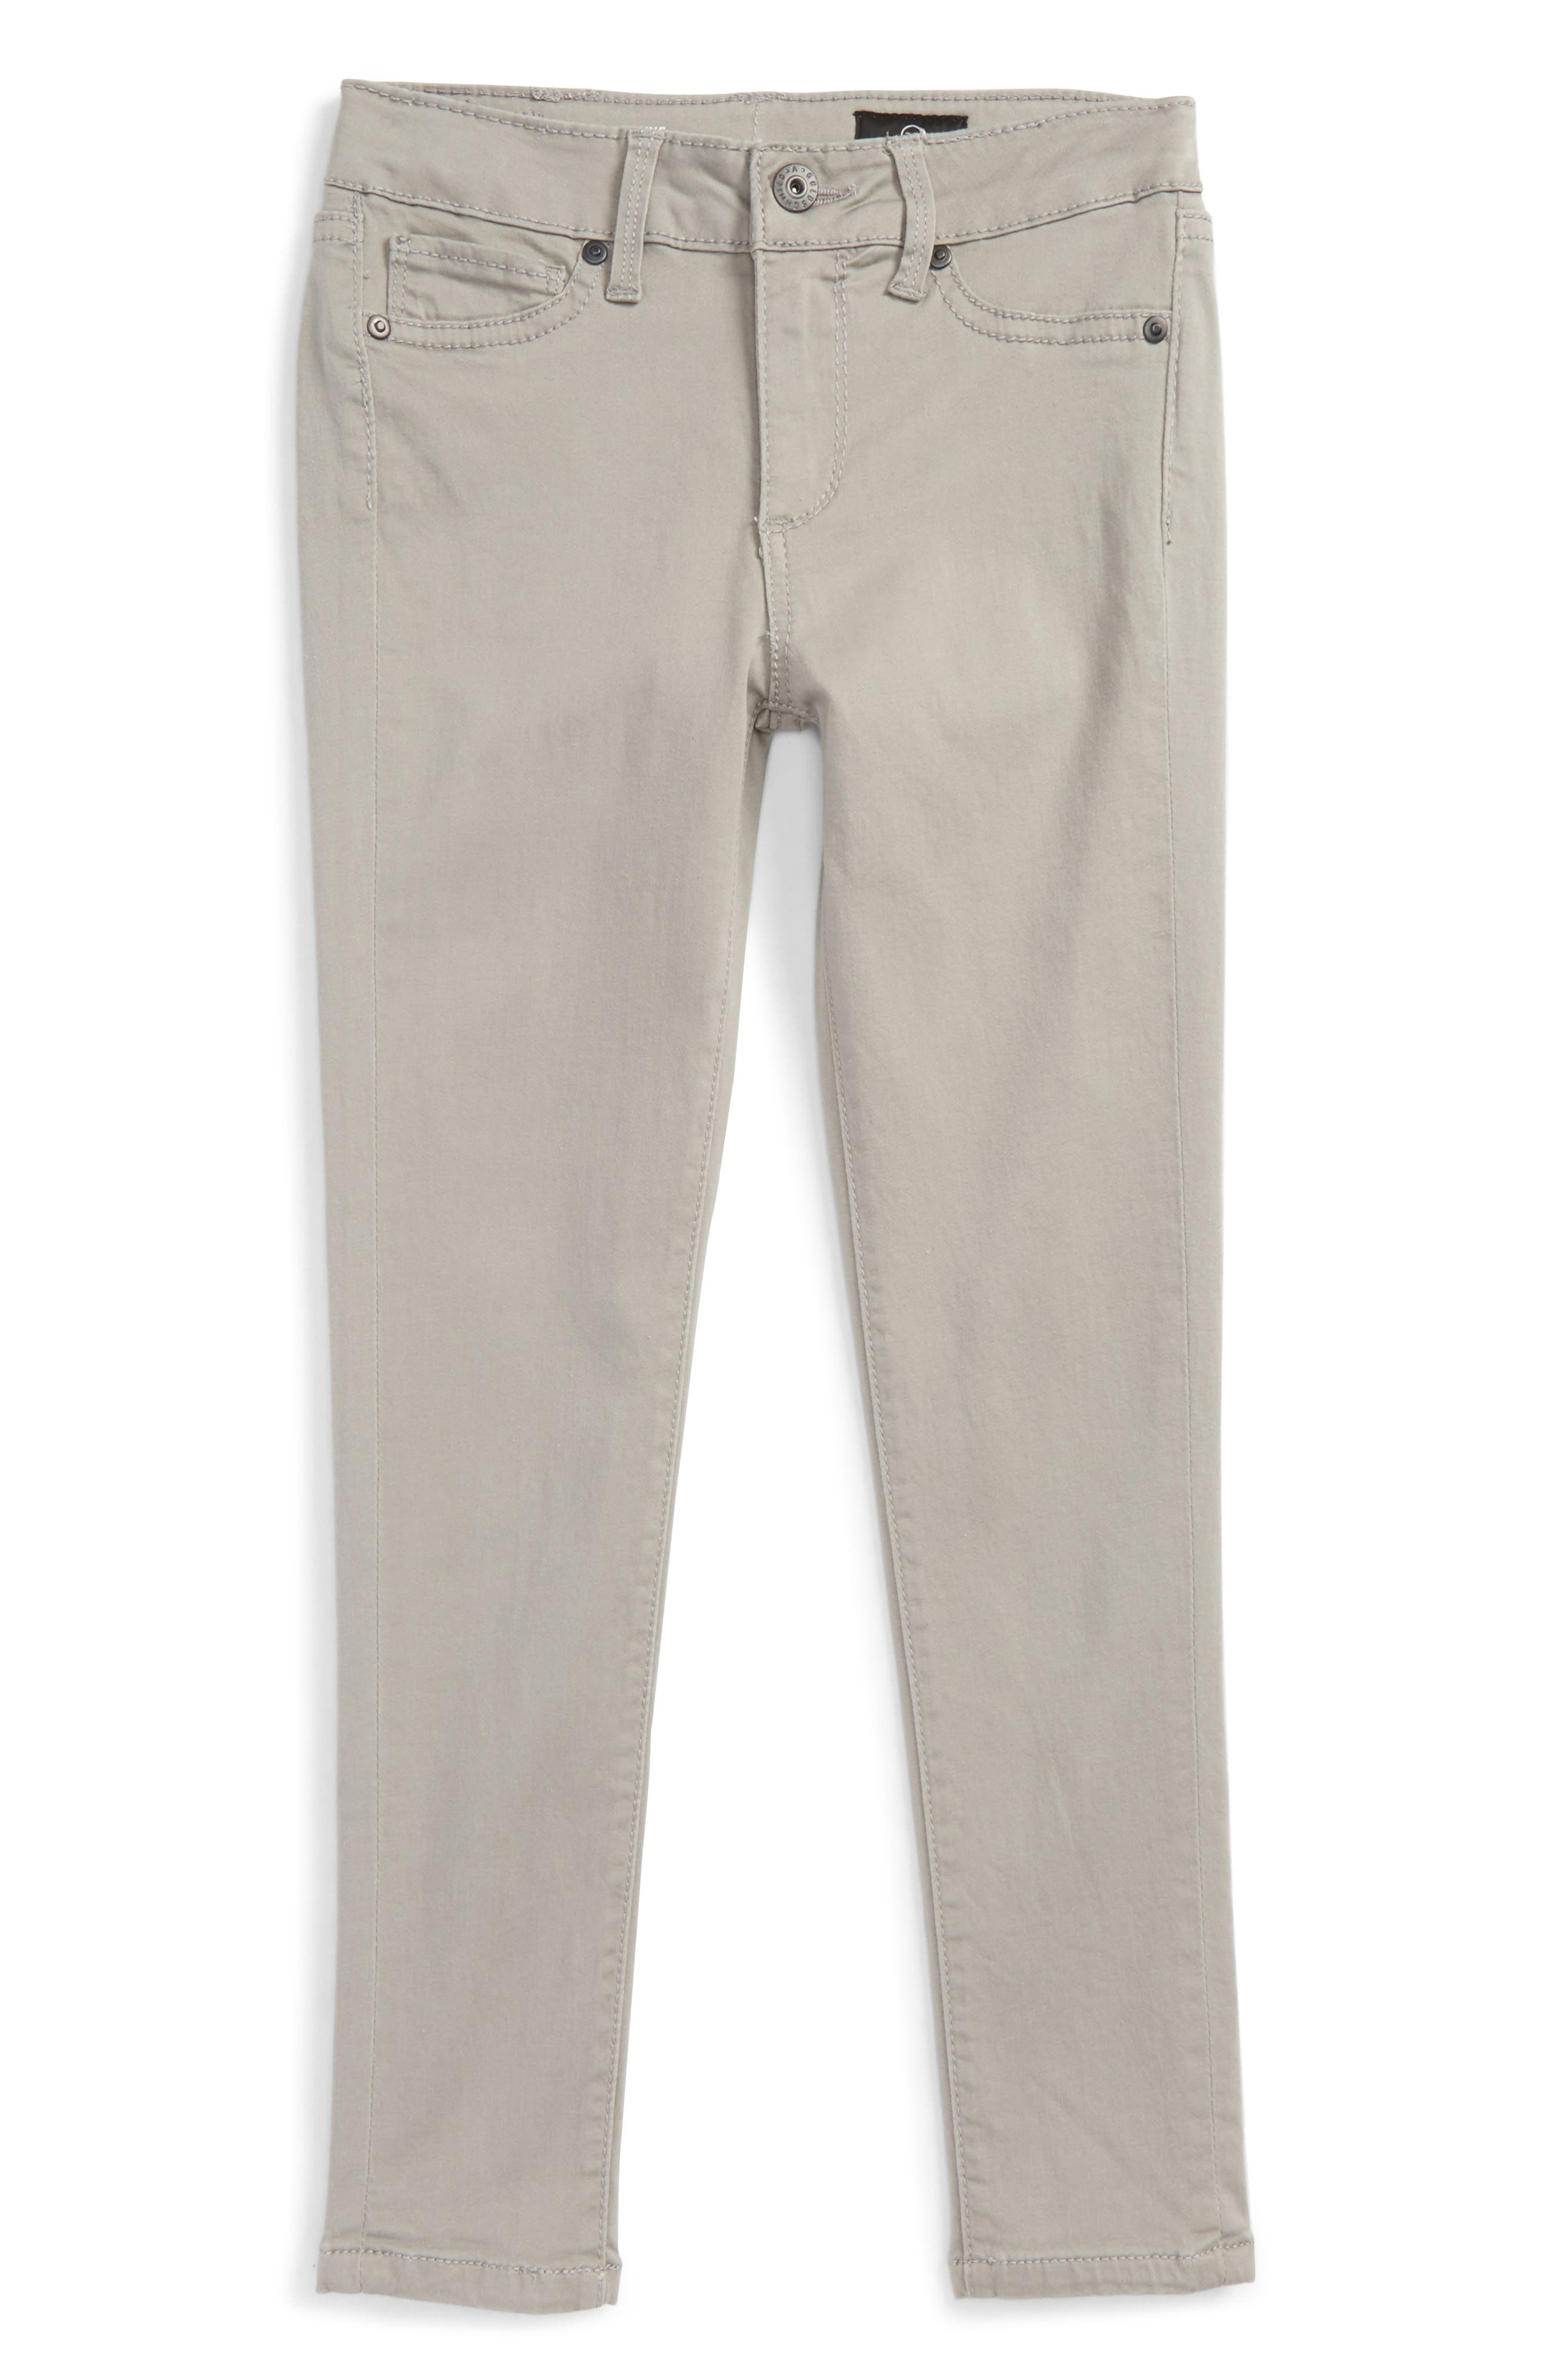 Main Image - ag adriano goldschmied kids Twiggy Luxe Ankle Skinny Jeans (Toddler Girls & Little Girls)